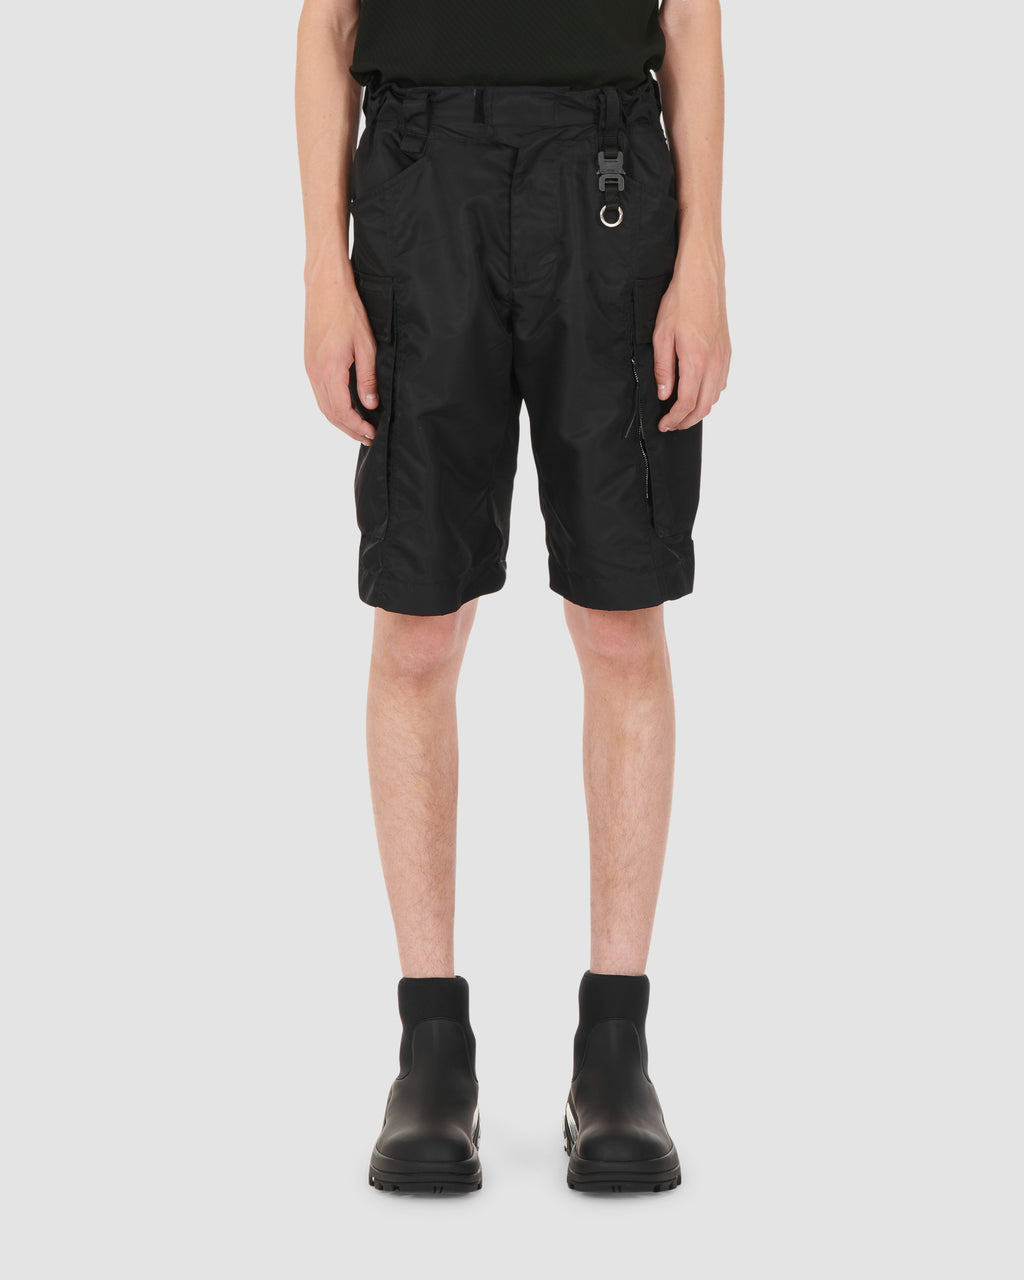 1017 ALYX 9SM | BLACK TACTICAL SHORT | Pants | BLACK, Google Shopping, Man, MEN, Pants, S20, S20 Drop II, SHORTS, Trousers